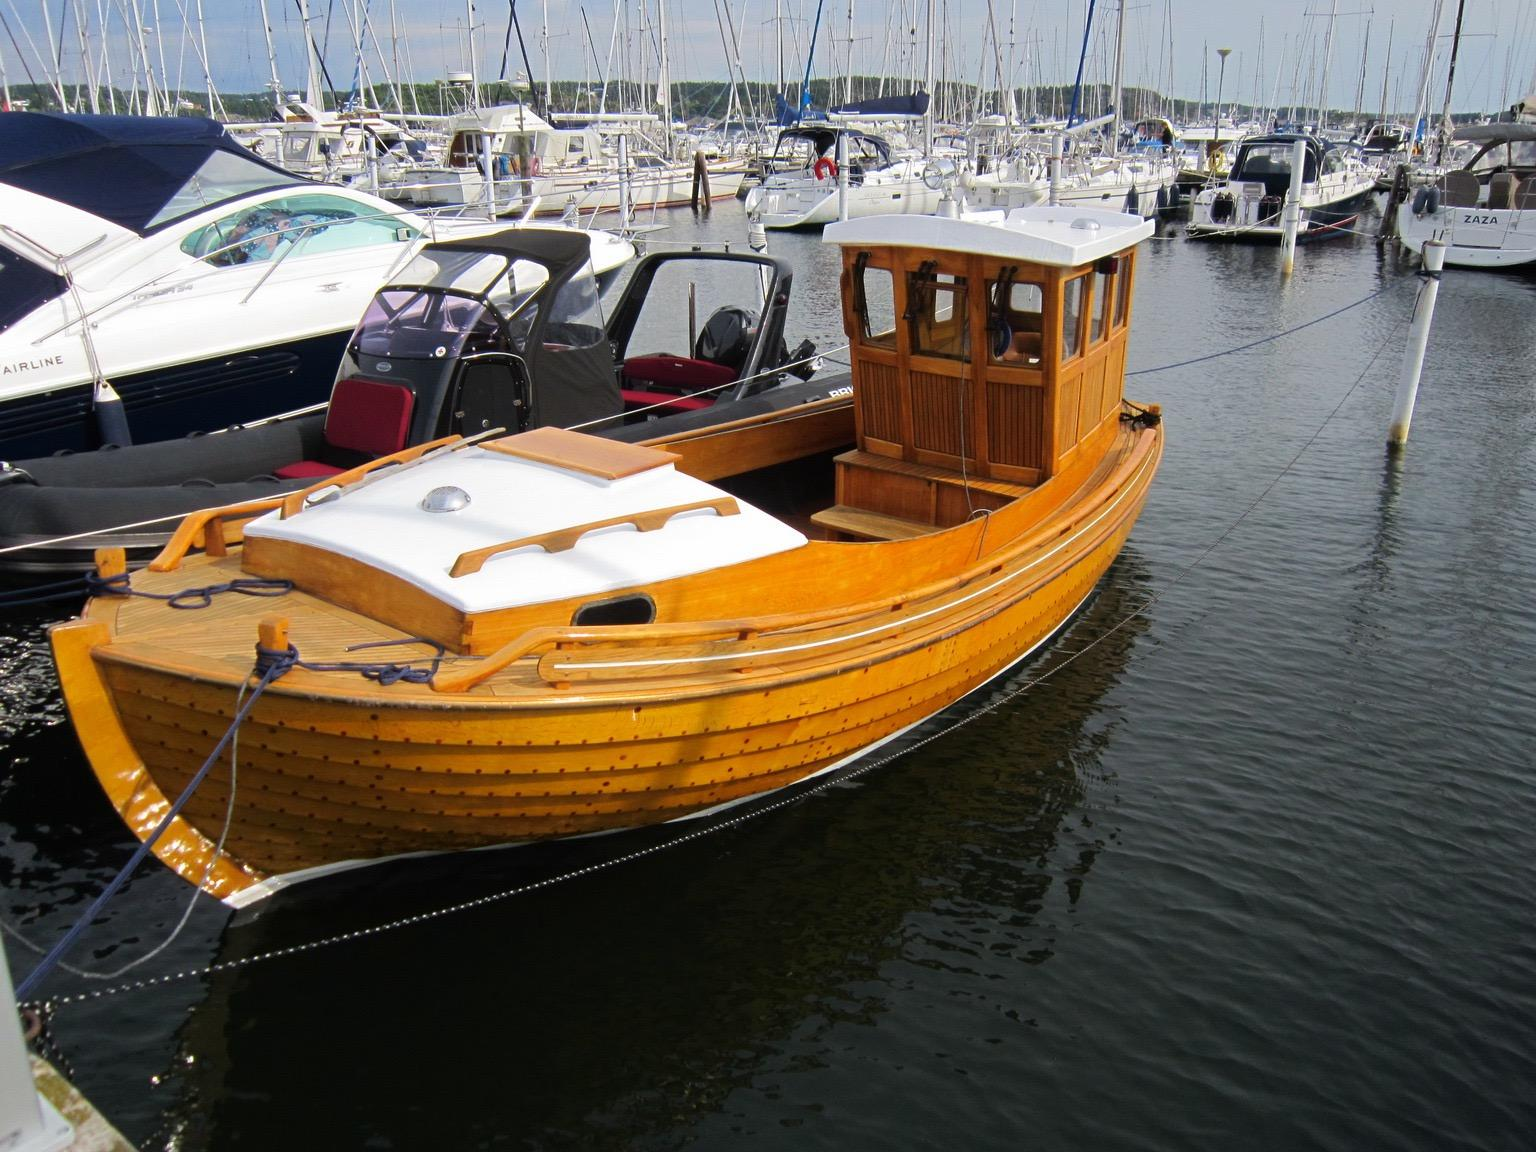 """1995 Traditional Swedish """"Julle"""" Wooden Boat Power Boat ..."""